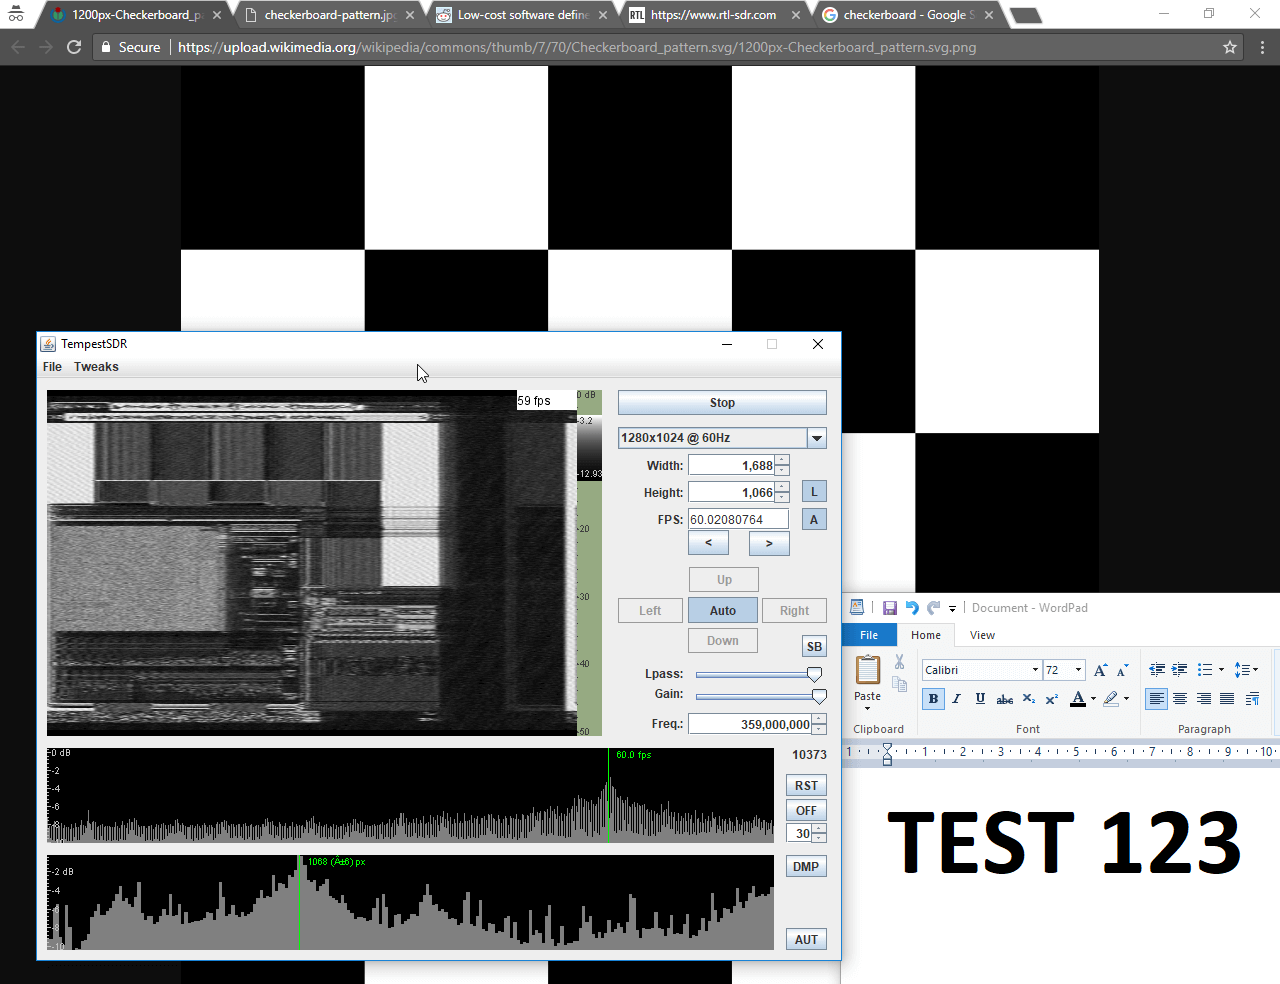 TempestSDR: An SDR tool for Eavesdropping on Computer Screens via